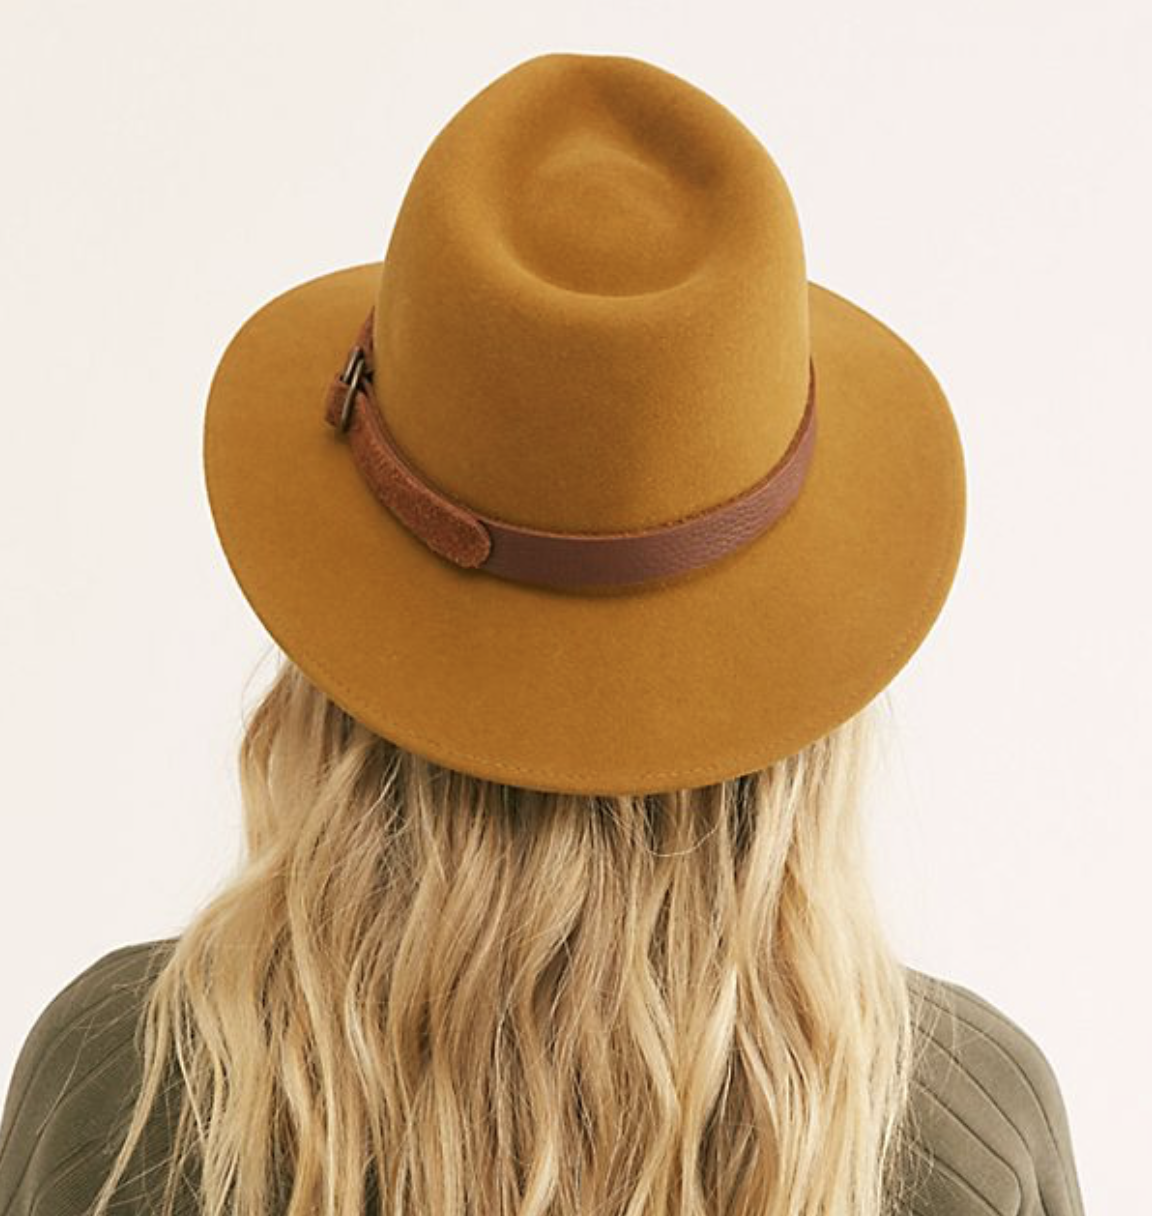 Laura Leigh of Louella Reese shares her favorite summer purchases of winter 2018 including a bronze felt hat